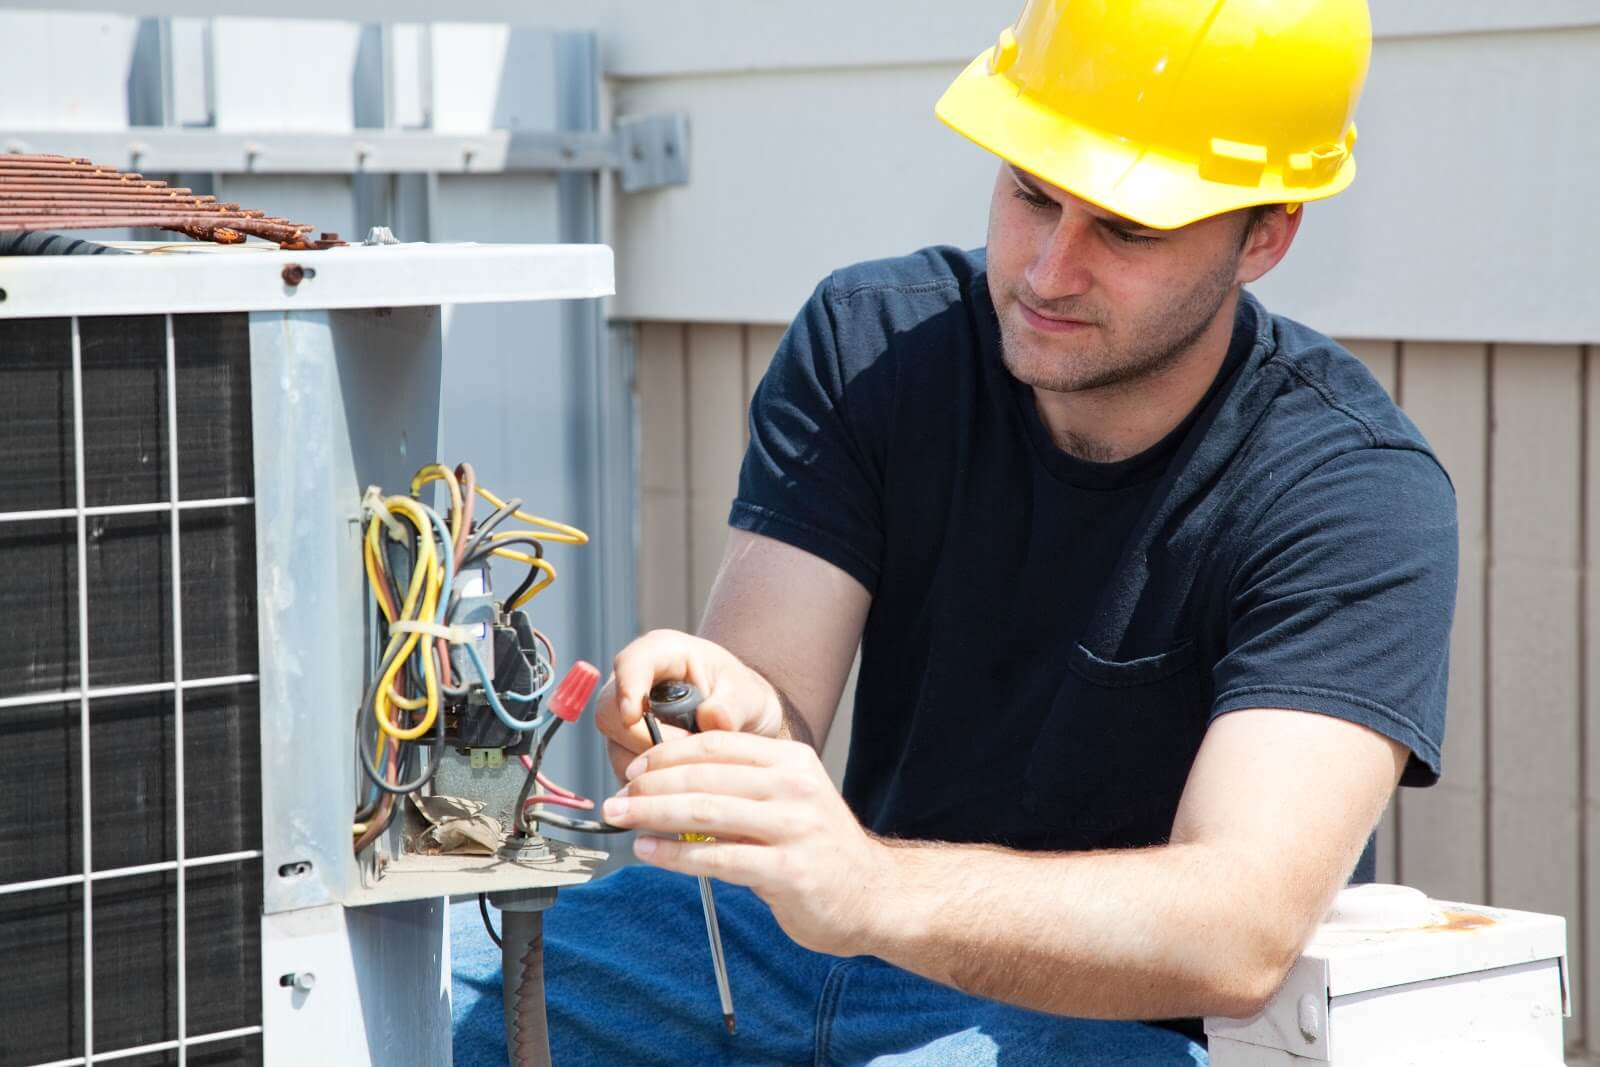 My AC Uses R-22 Freon: What Can I Do?